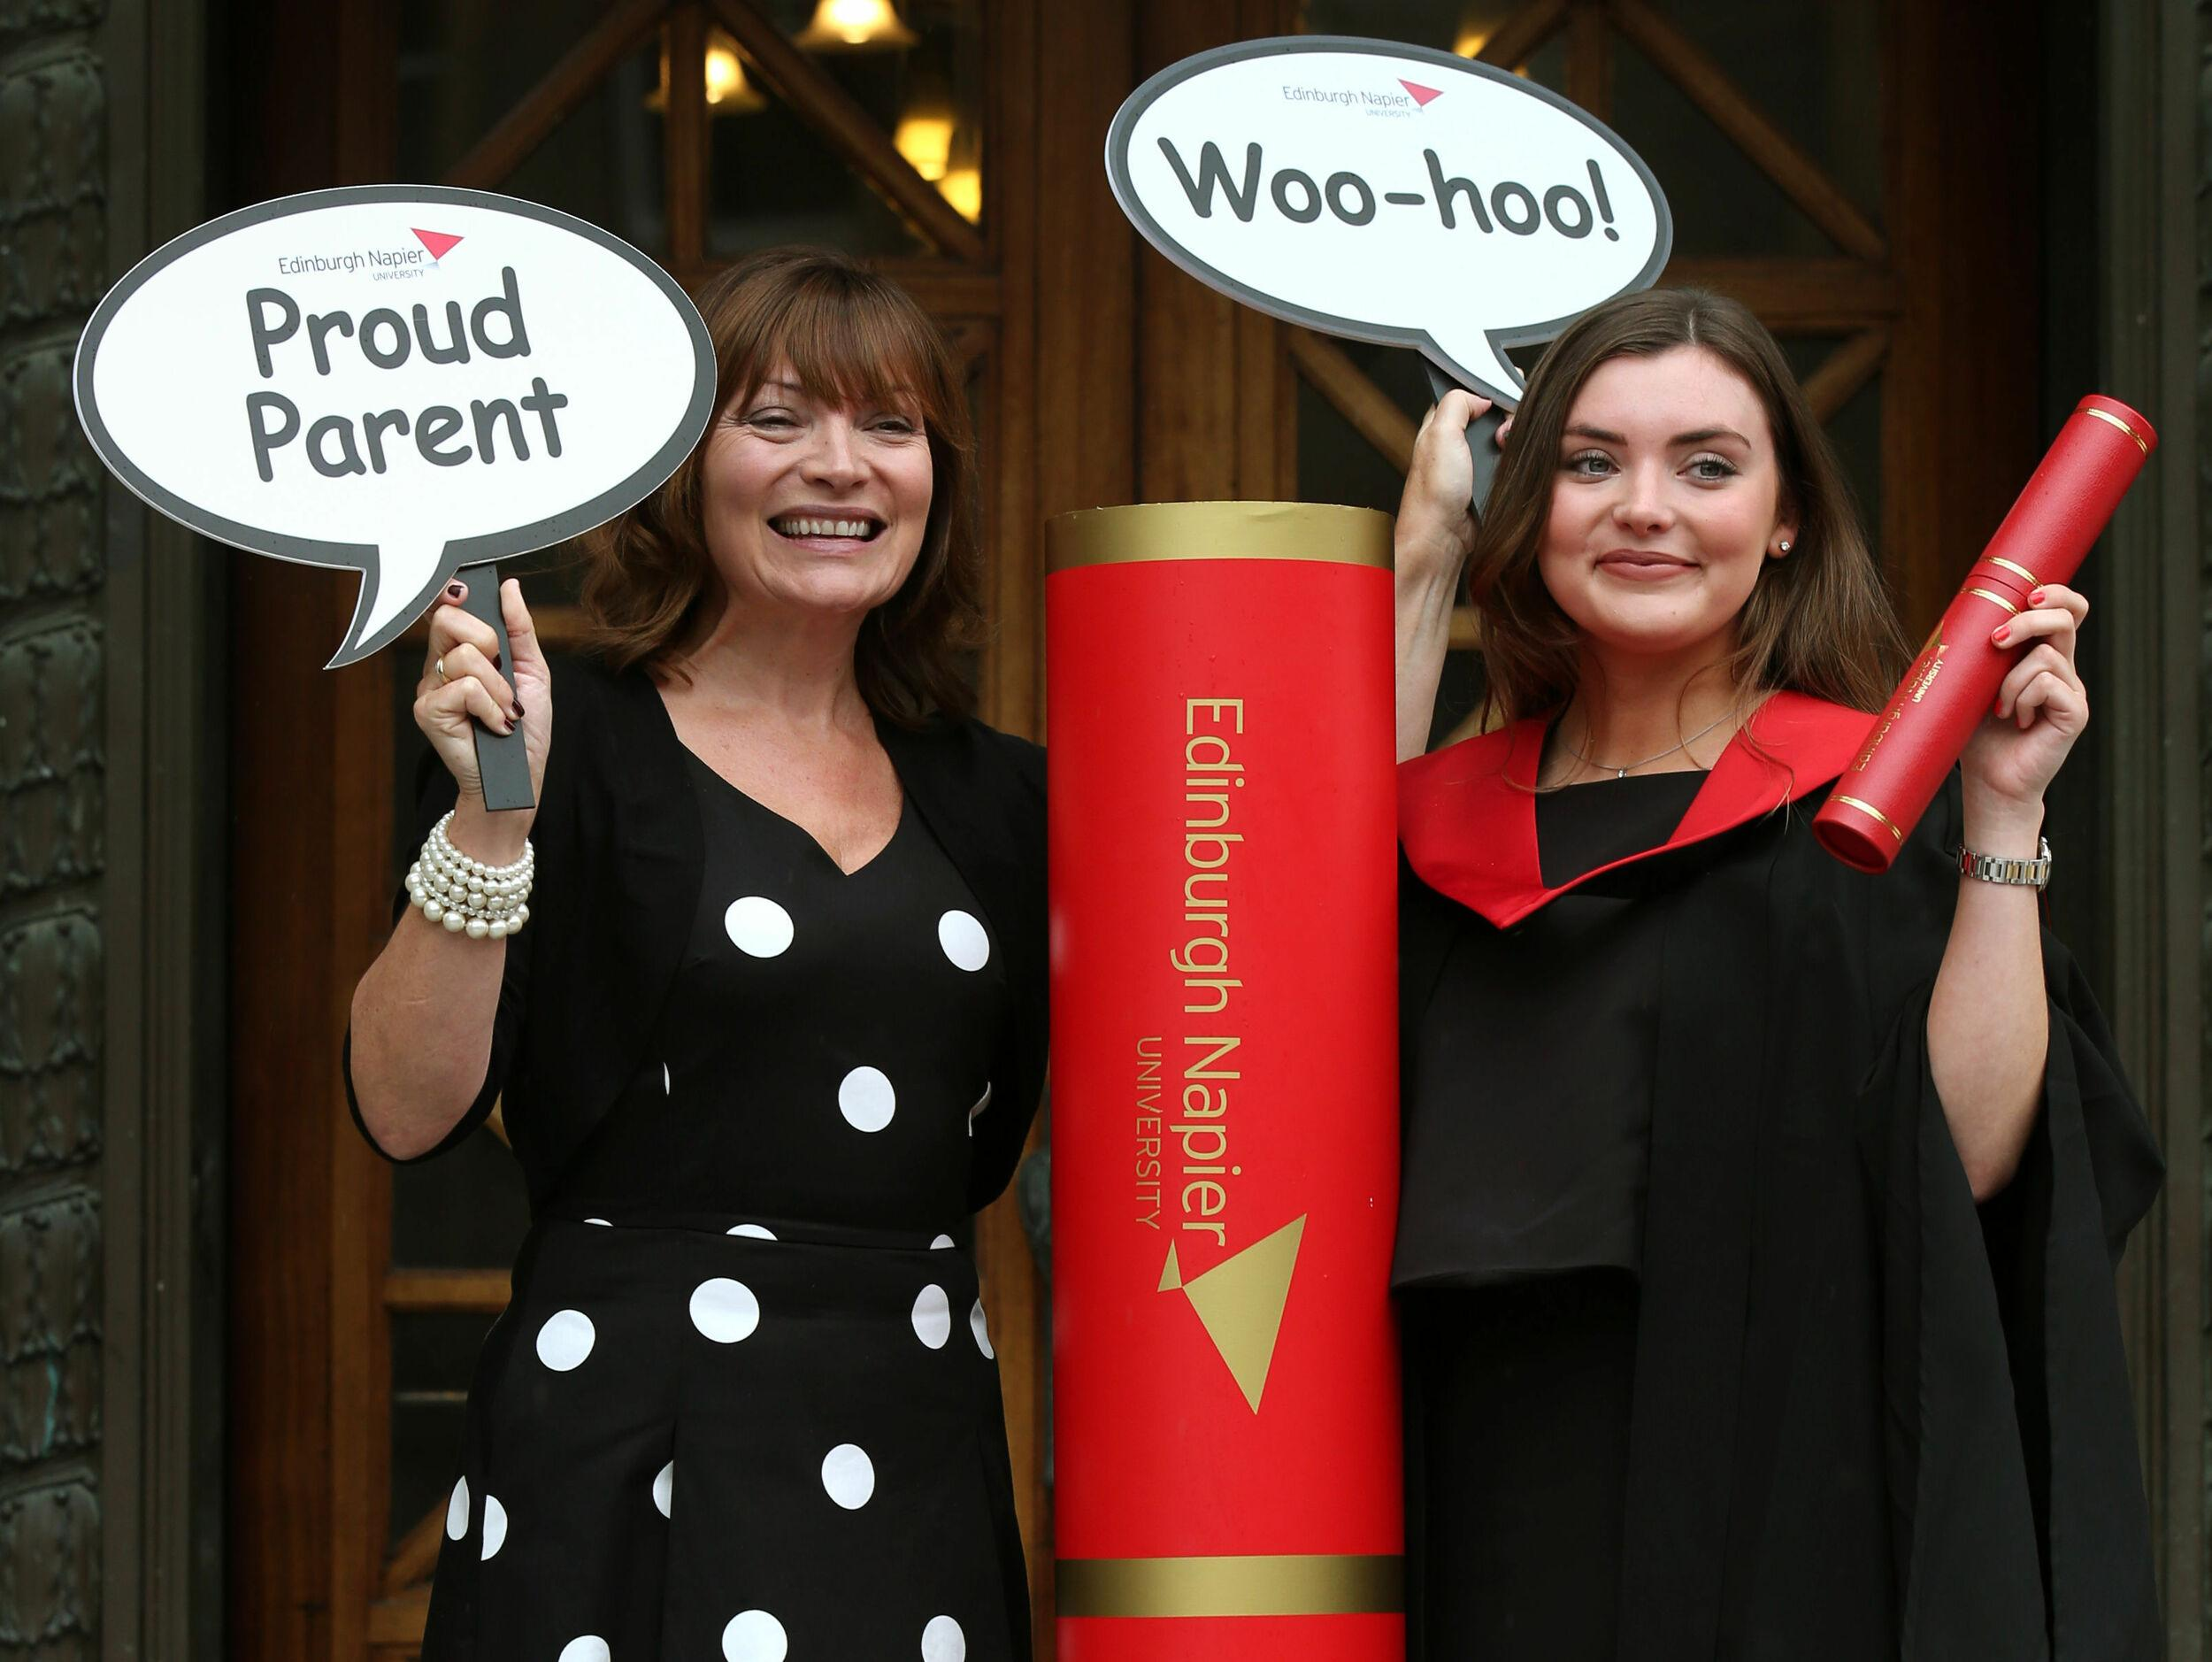 TV presenter Lorraine Kelly with her daughter Rosie Smith, after she graduated from Edinburgh Napier university with a journalism degree.